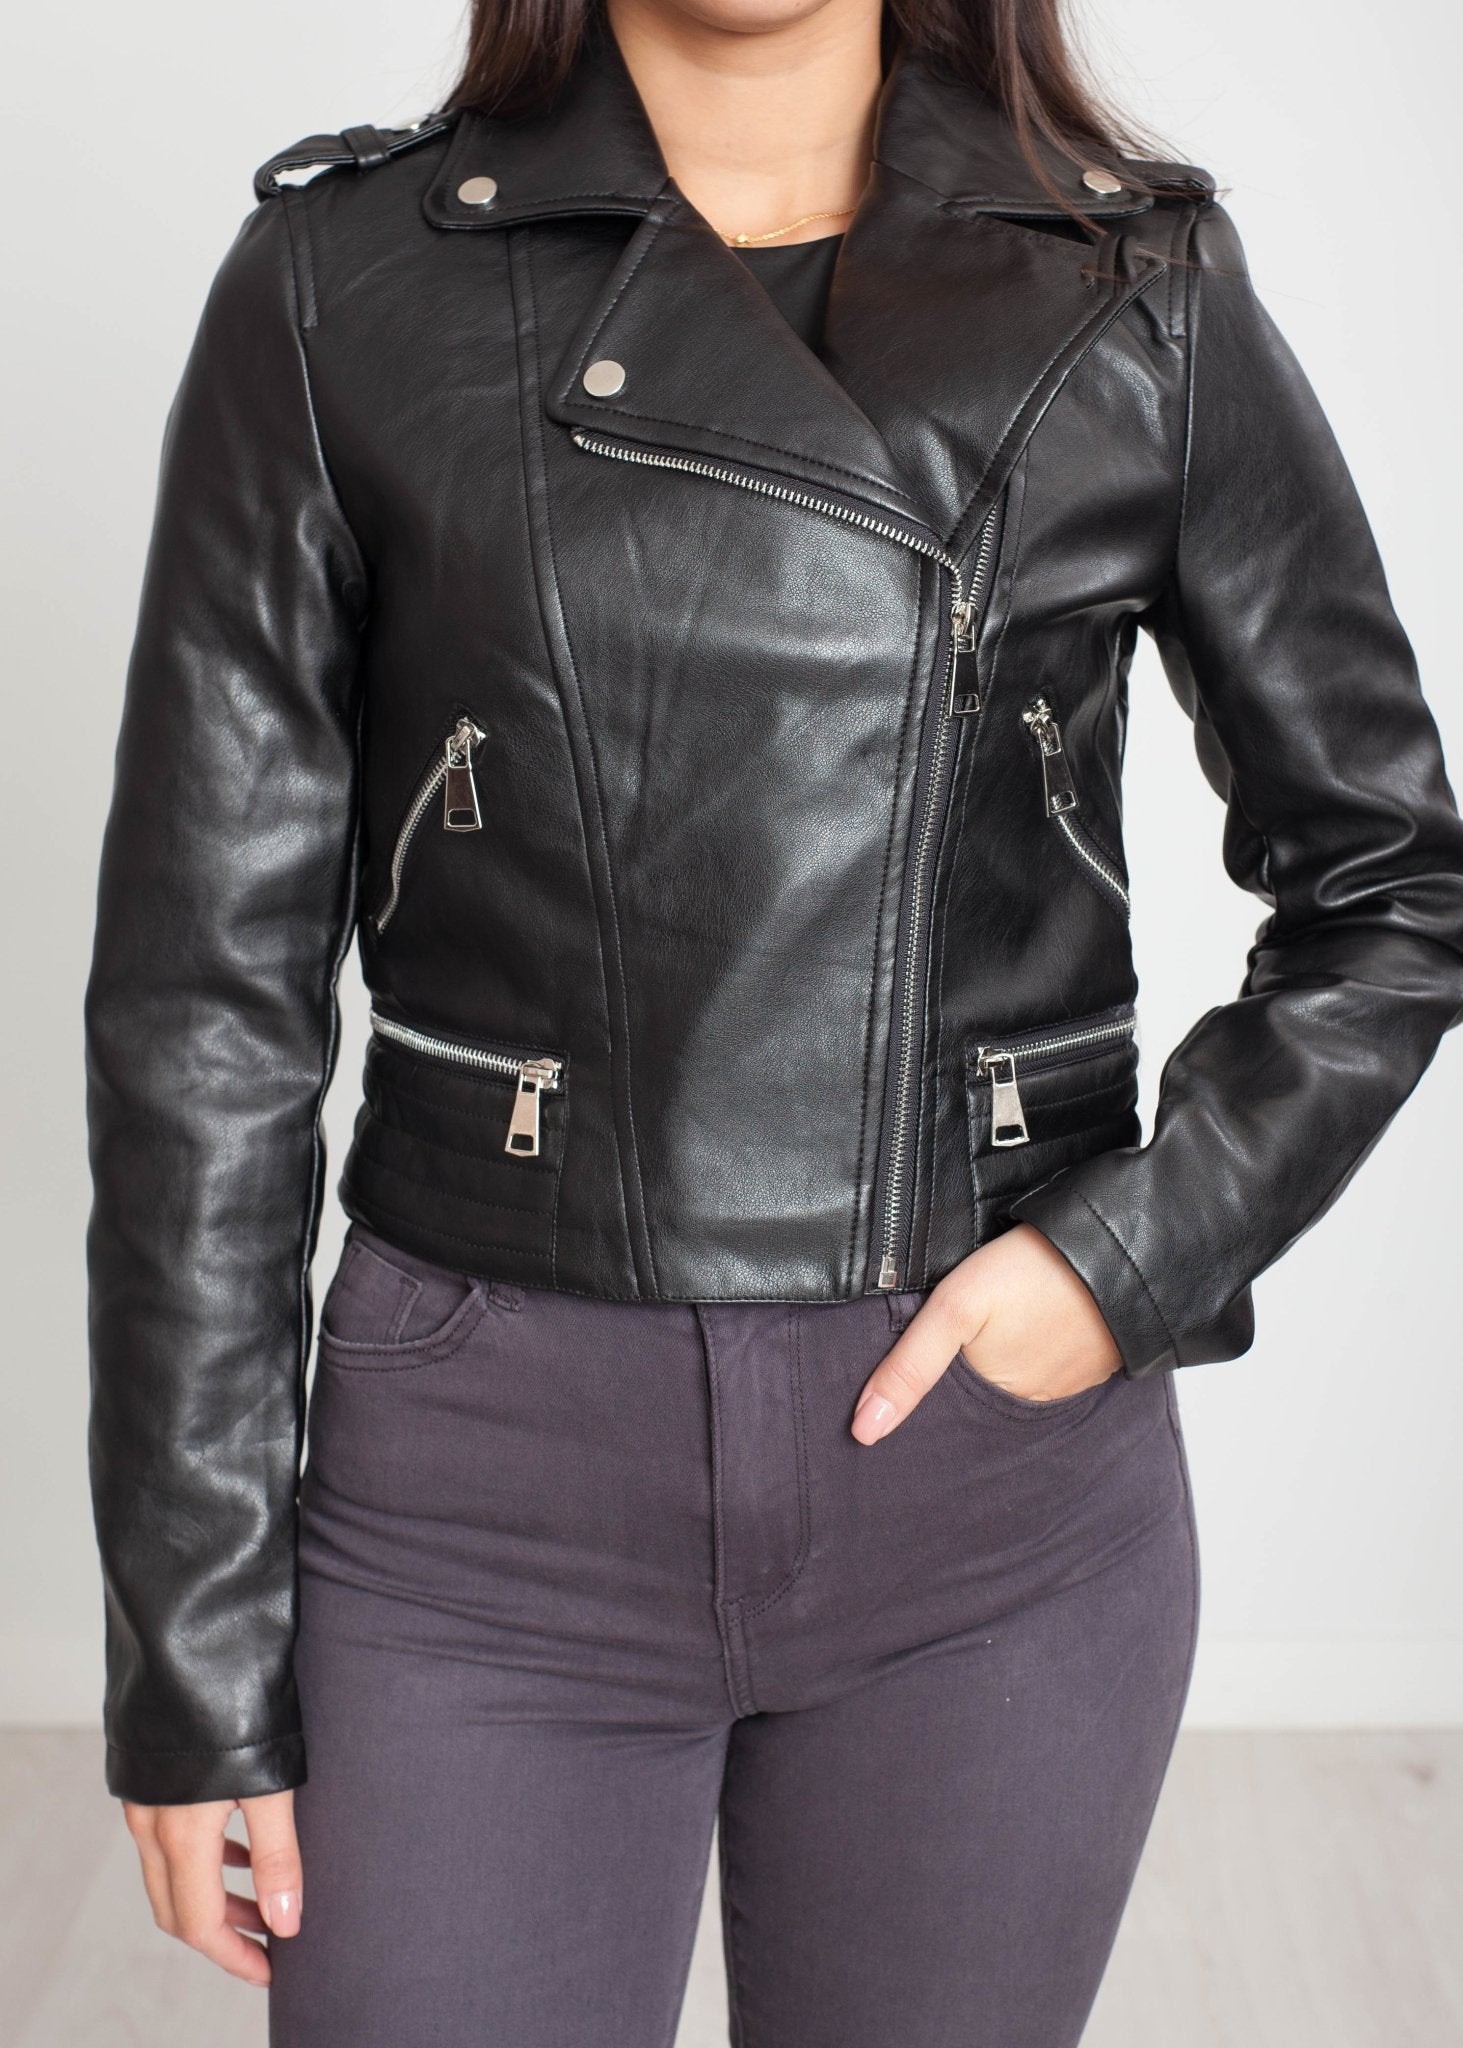 Belle Biker Jacket In Black - The Walk in Wardrobe